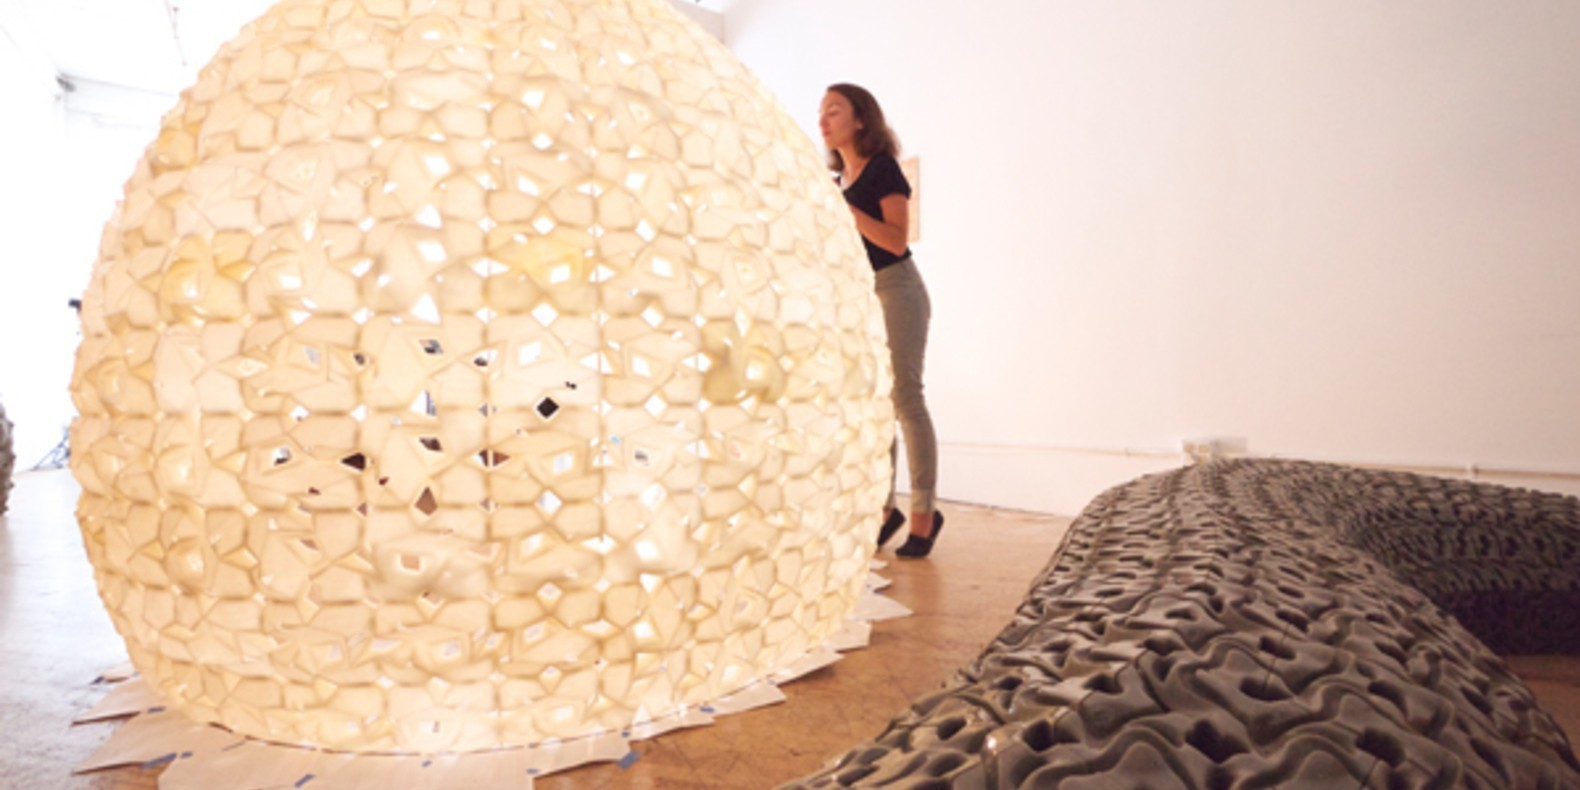 A 3D printed igloo made of salt